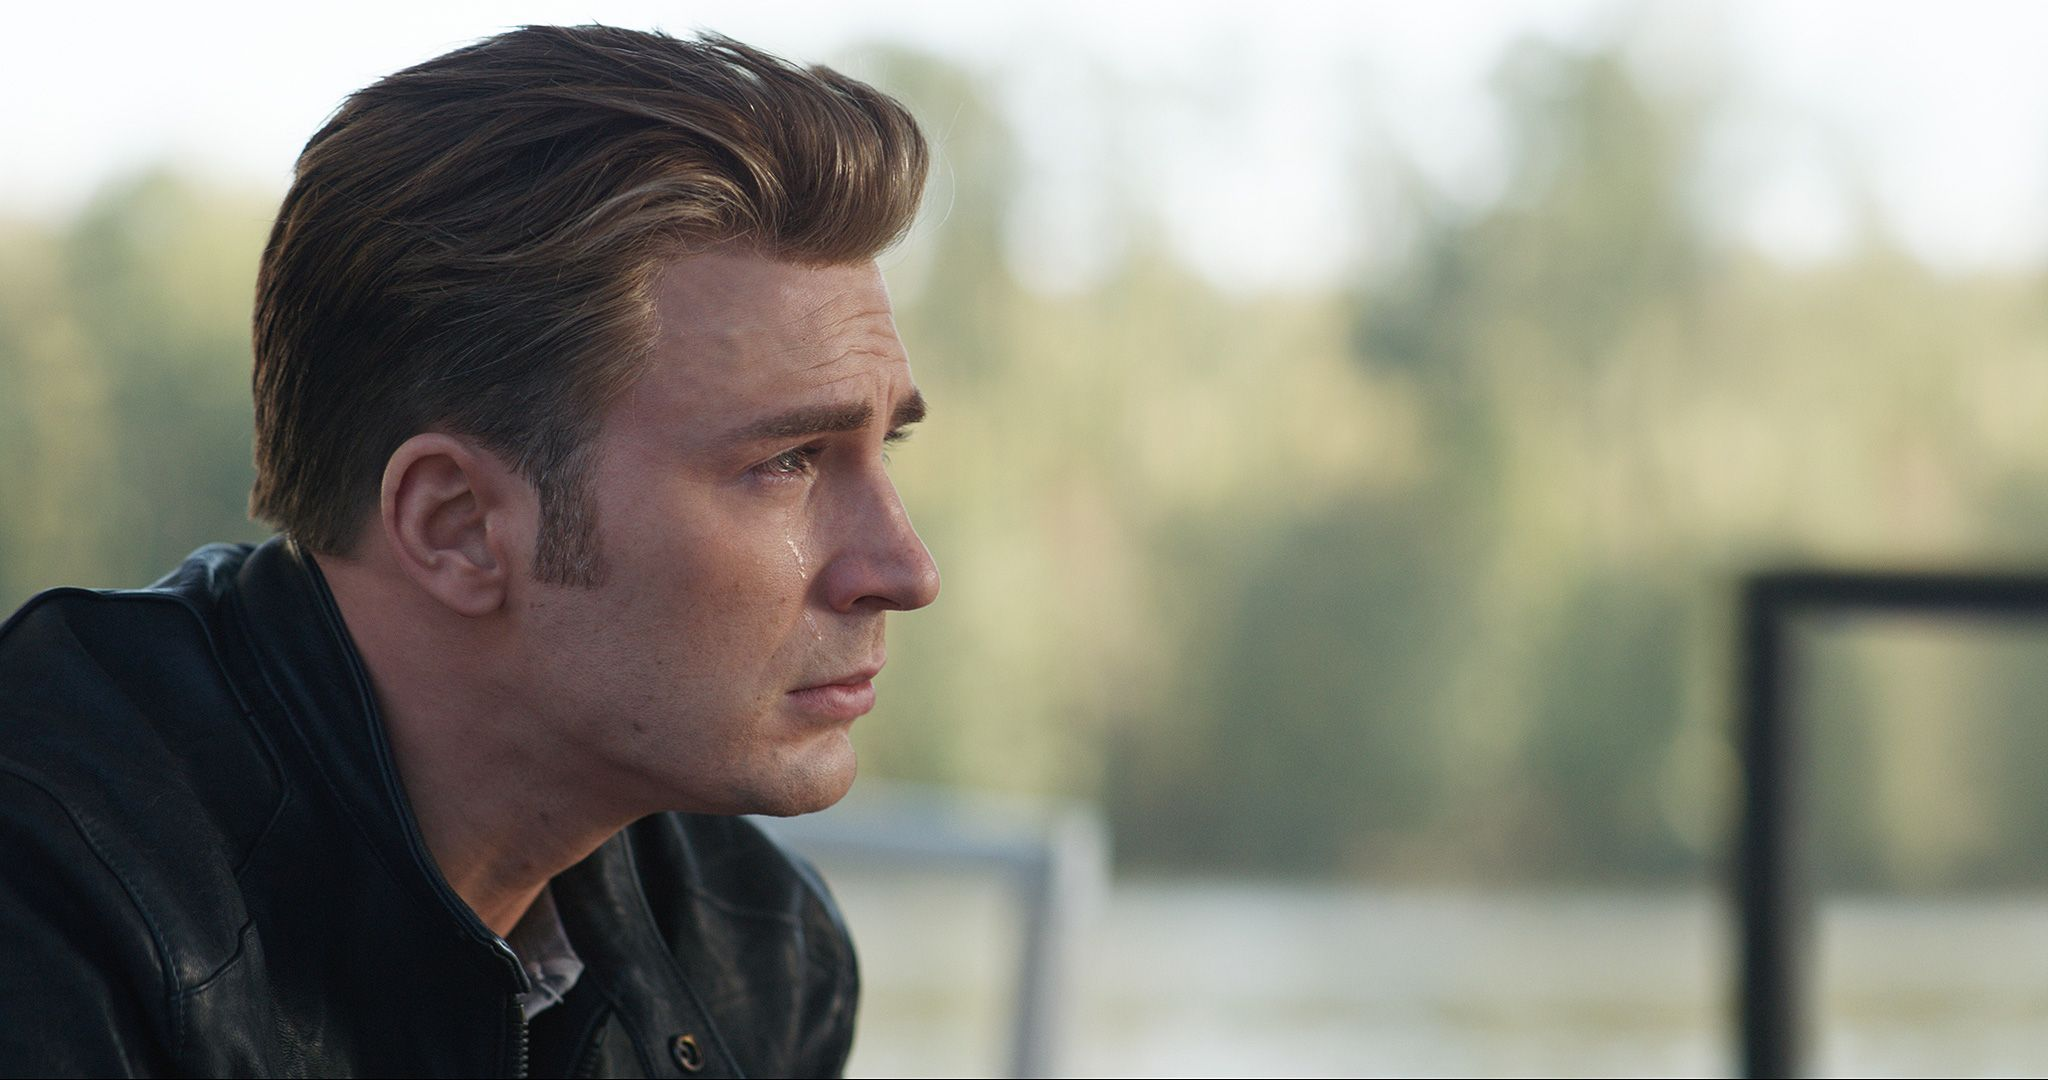 Avengers: Endgame directors reveal hilarious never-before-seen Old Man Cap footage with Chris Evans